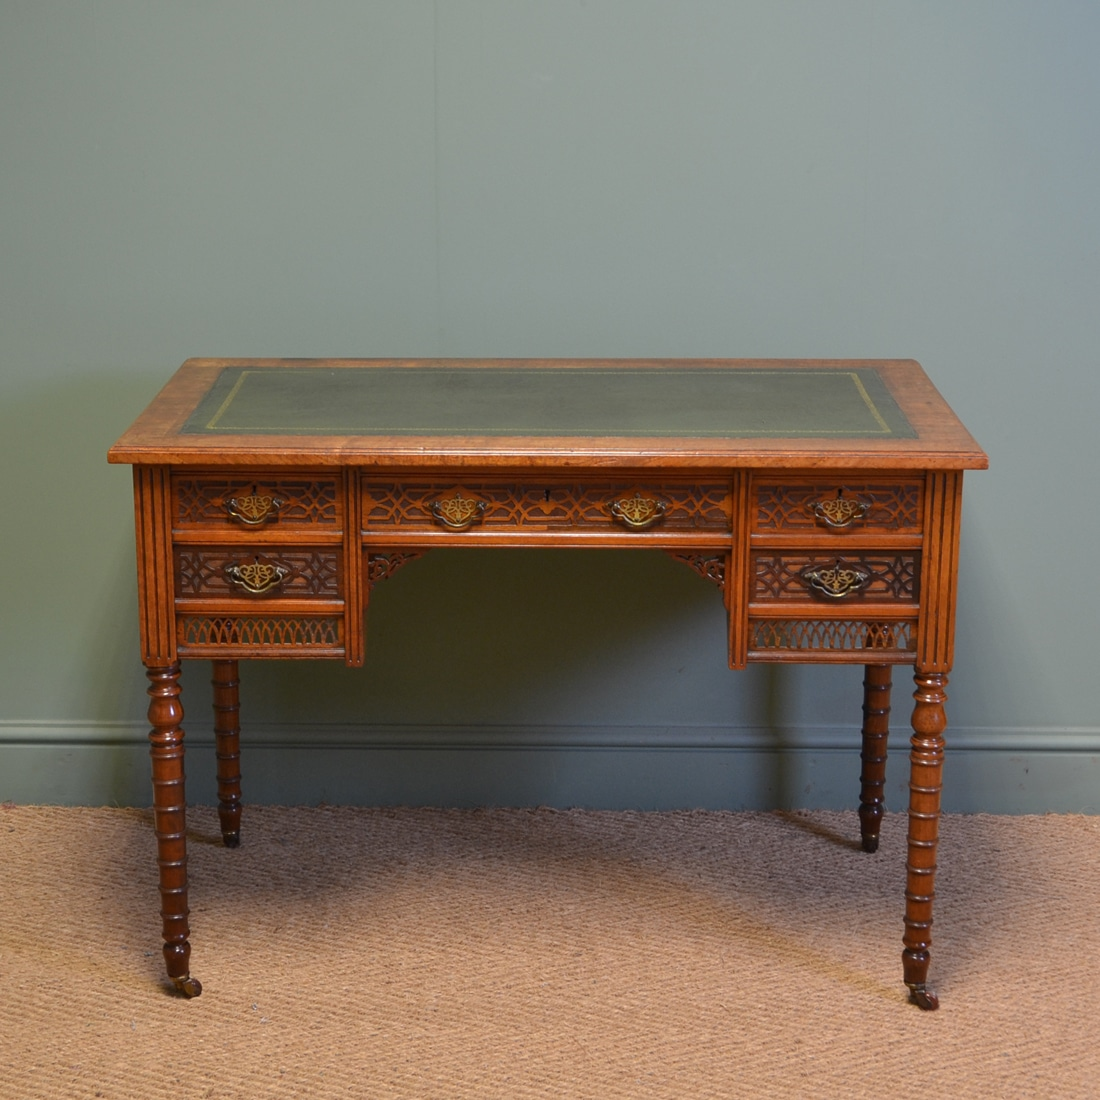 Writing Desk by JAS Shoolbred with decorative blind fretwork carvings